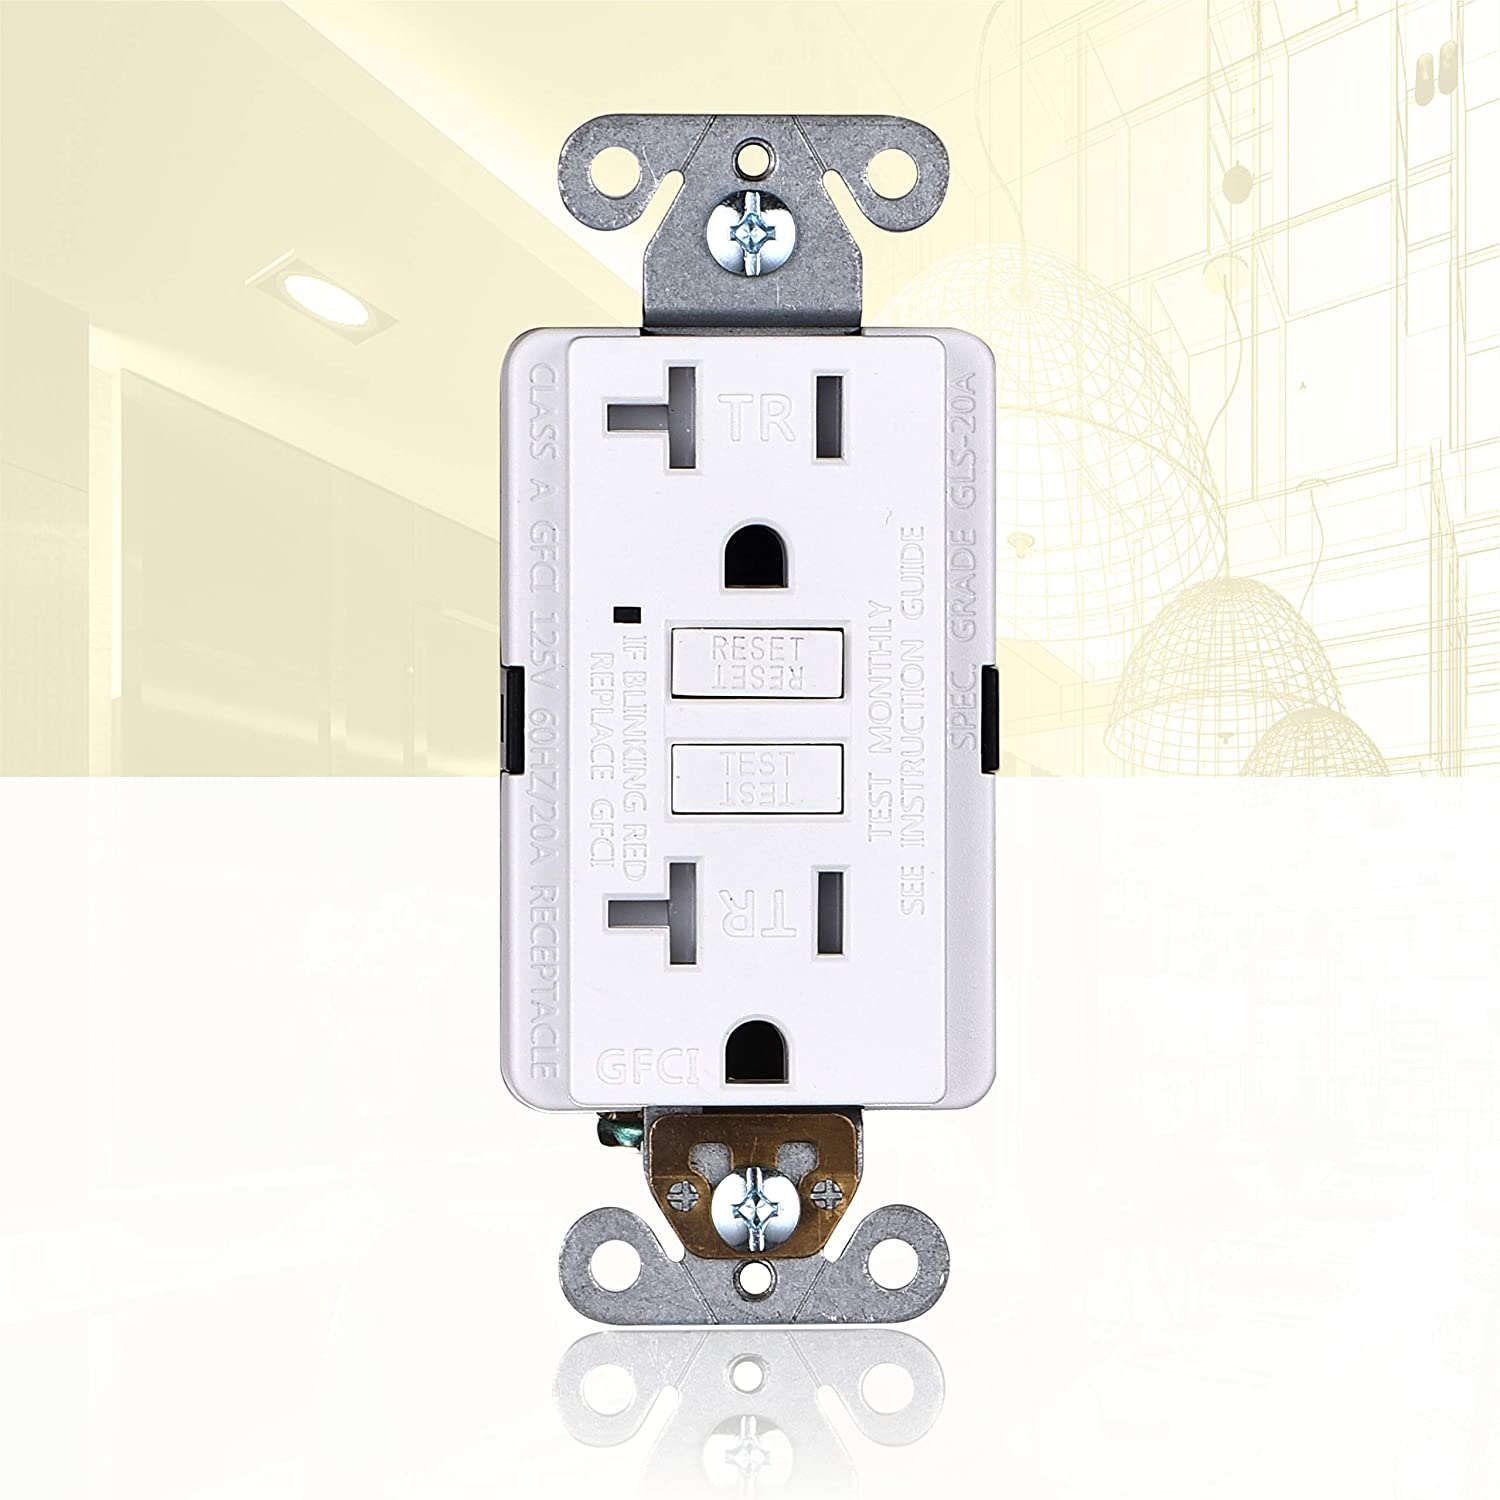 3 Piece Light Almond ETL Listed 20A GFCI Outlets Slim 3-Pack Faith Self-Test Ground Fault Circuit Interrupter Tamper-Resistant GFI Duplex Receptacles with LED Indicator